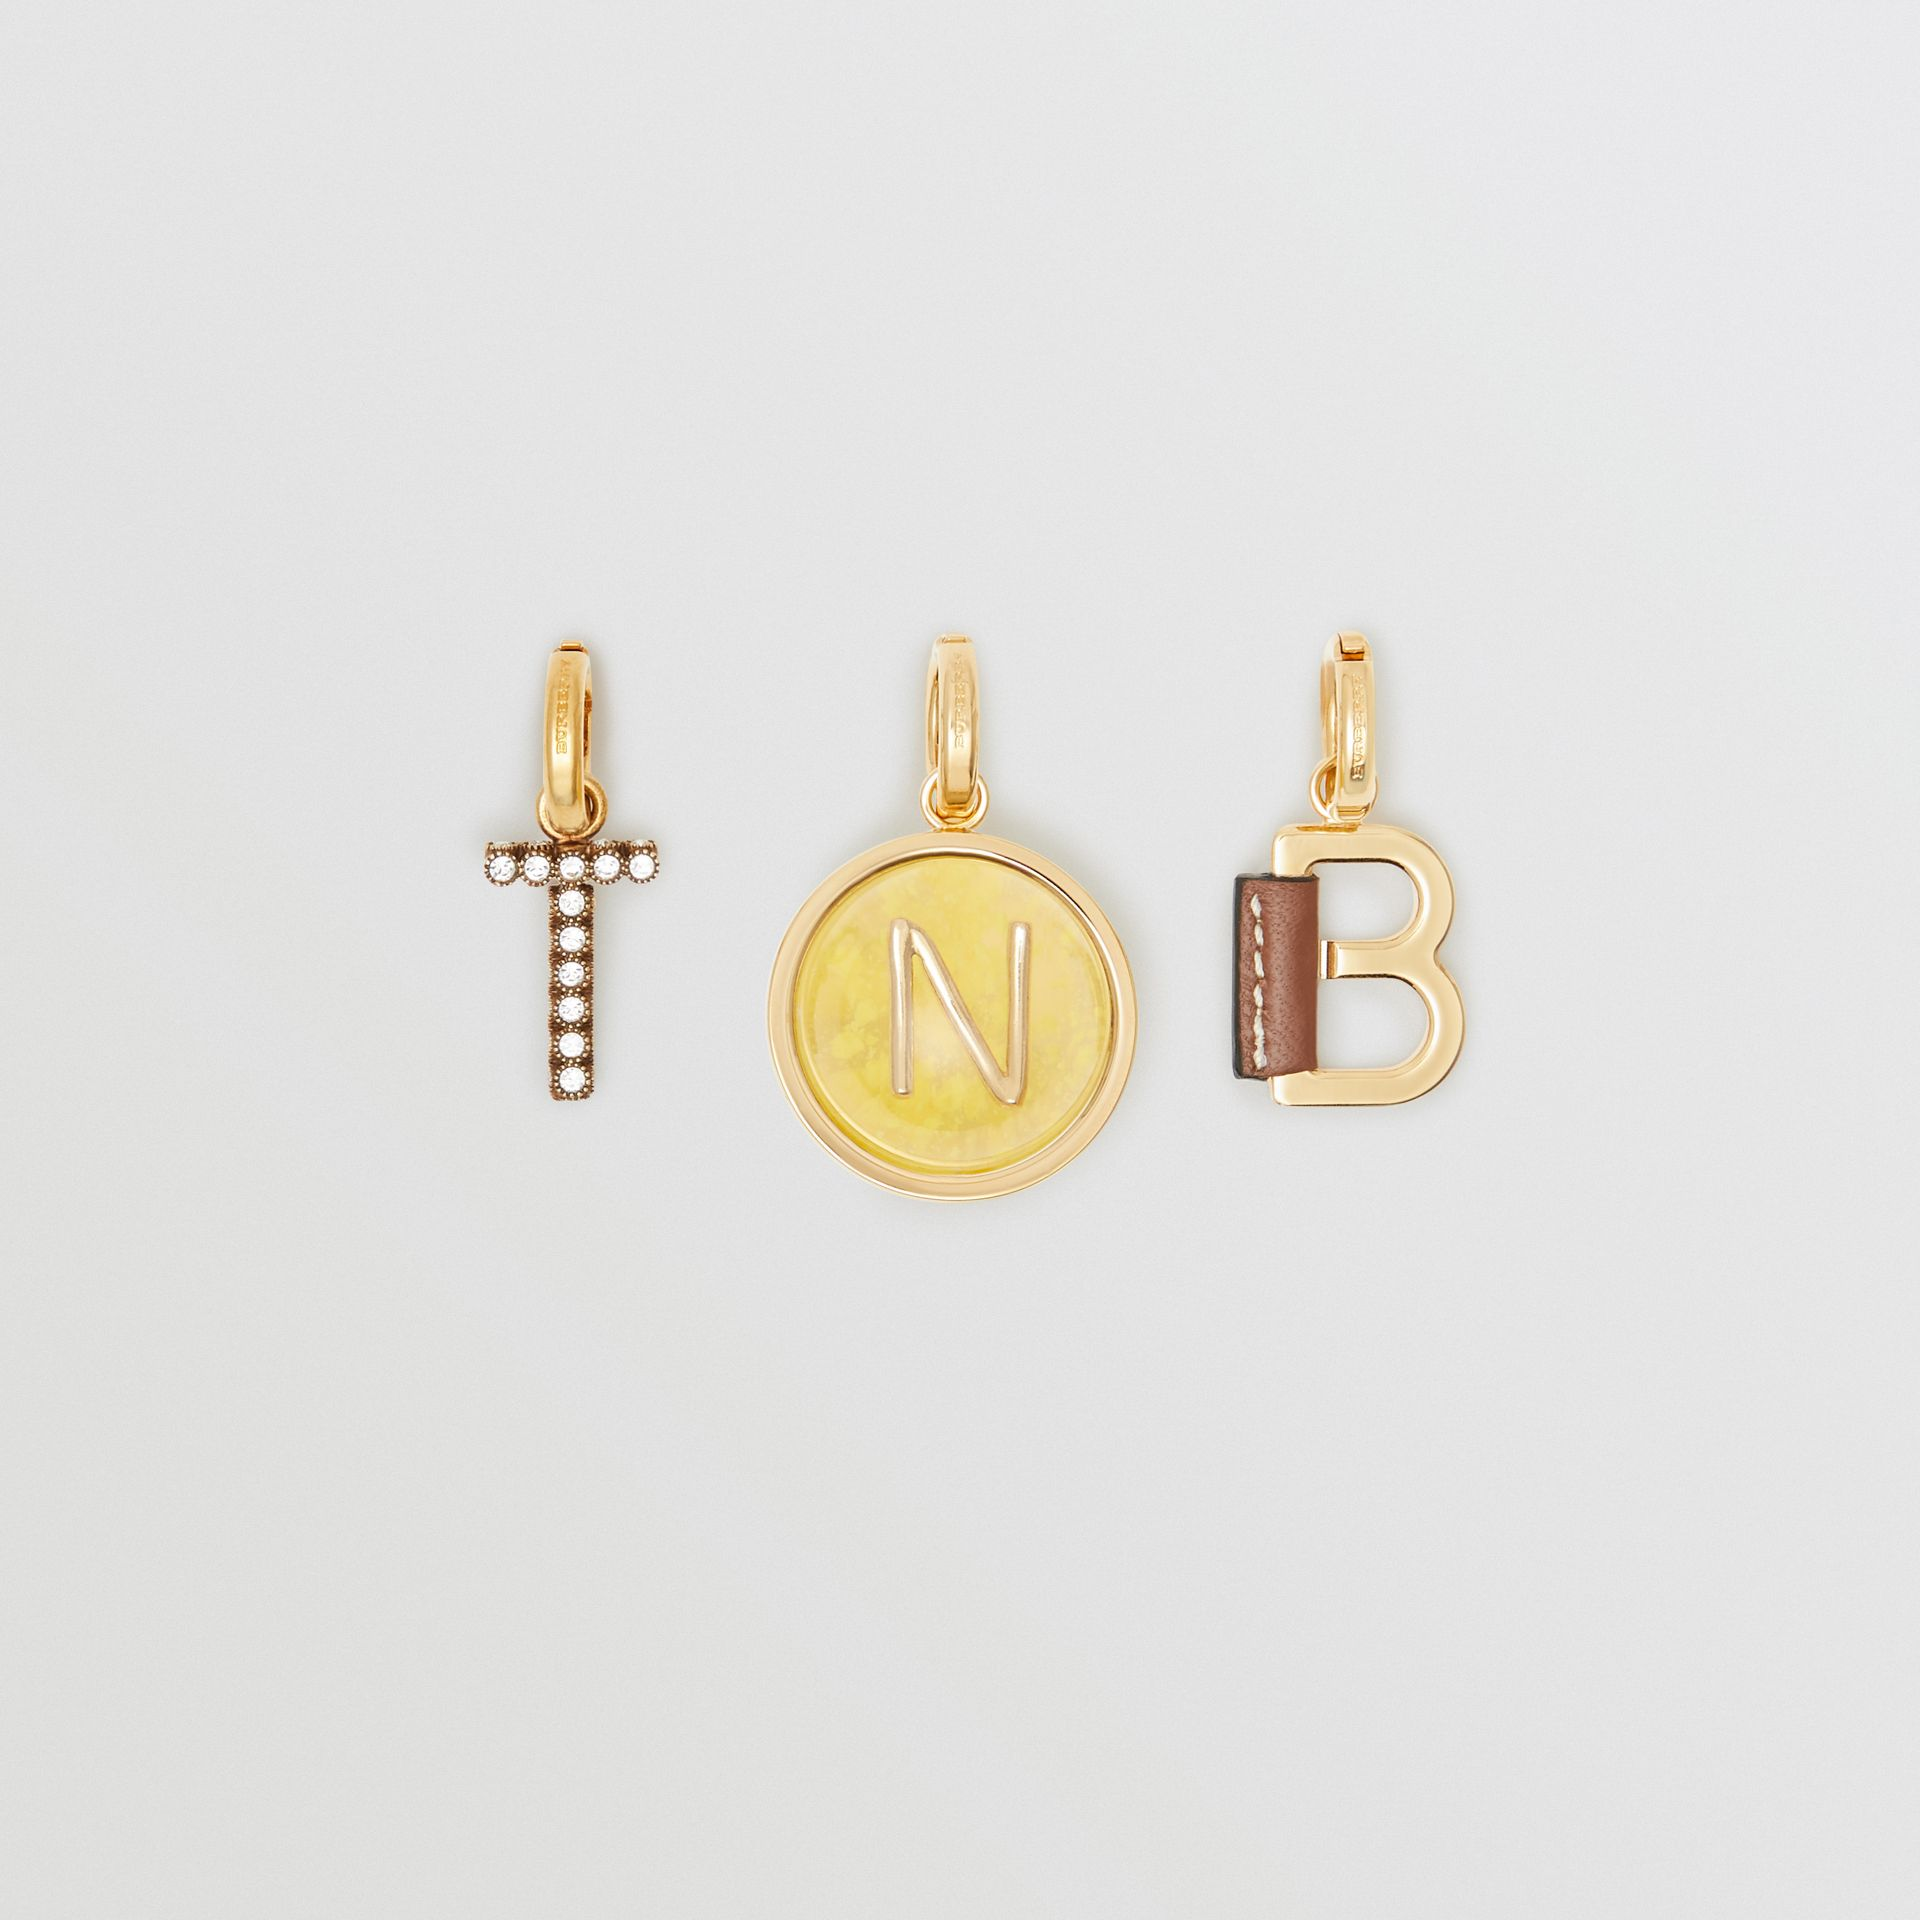 Marbled Resin 'I' Alphabet Charm in Gold/mimosa - Women | Burberry - gallery image 1